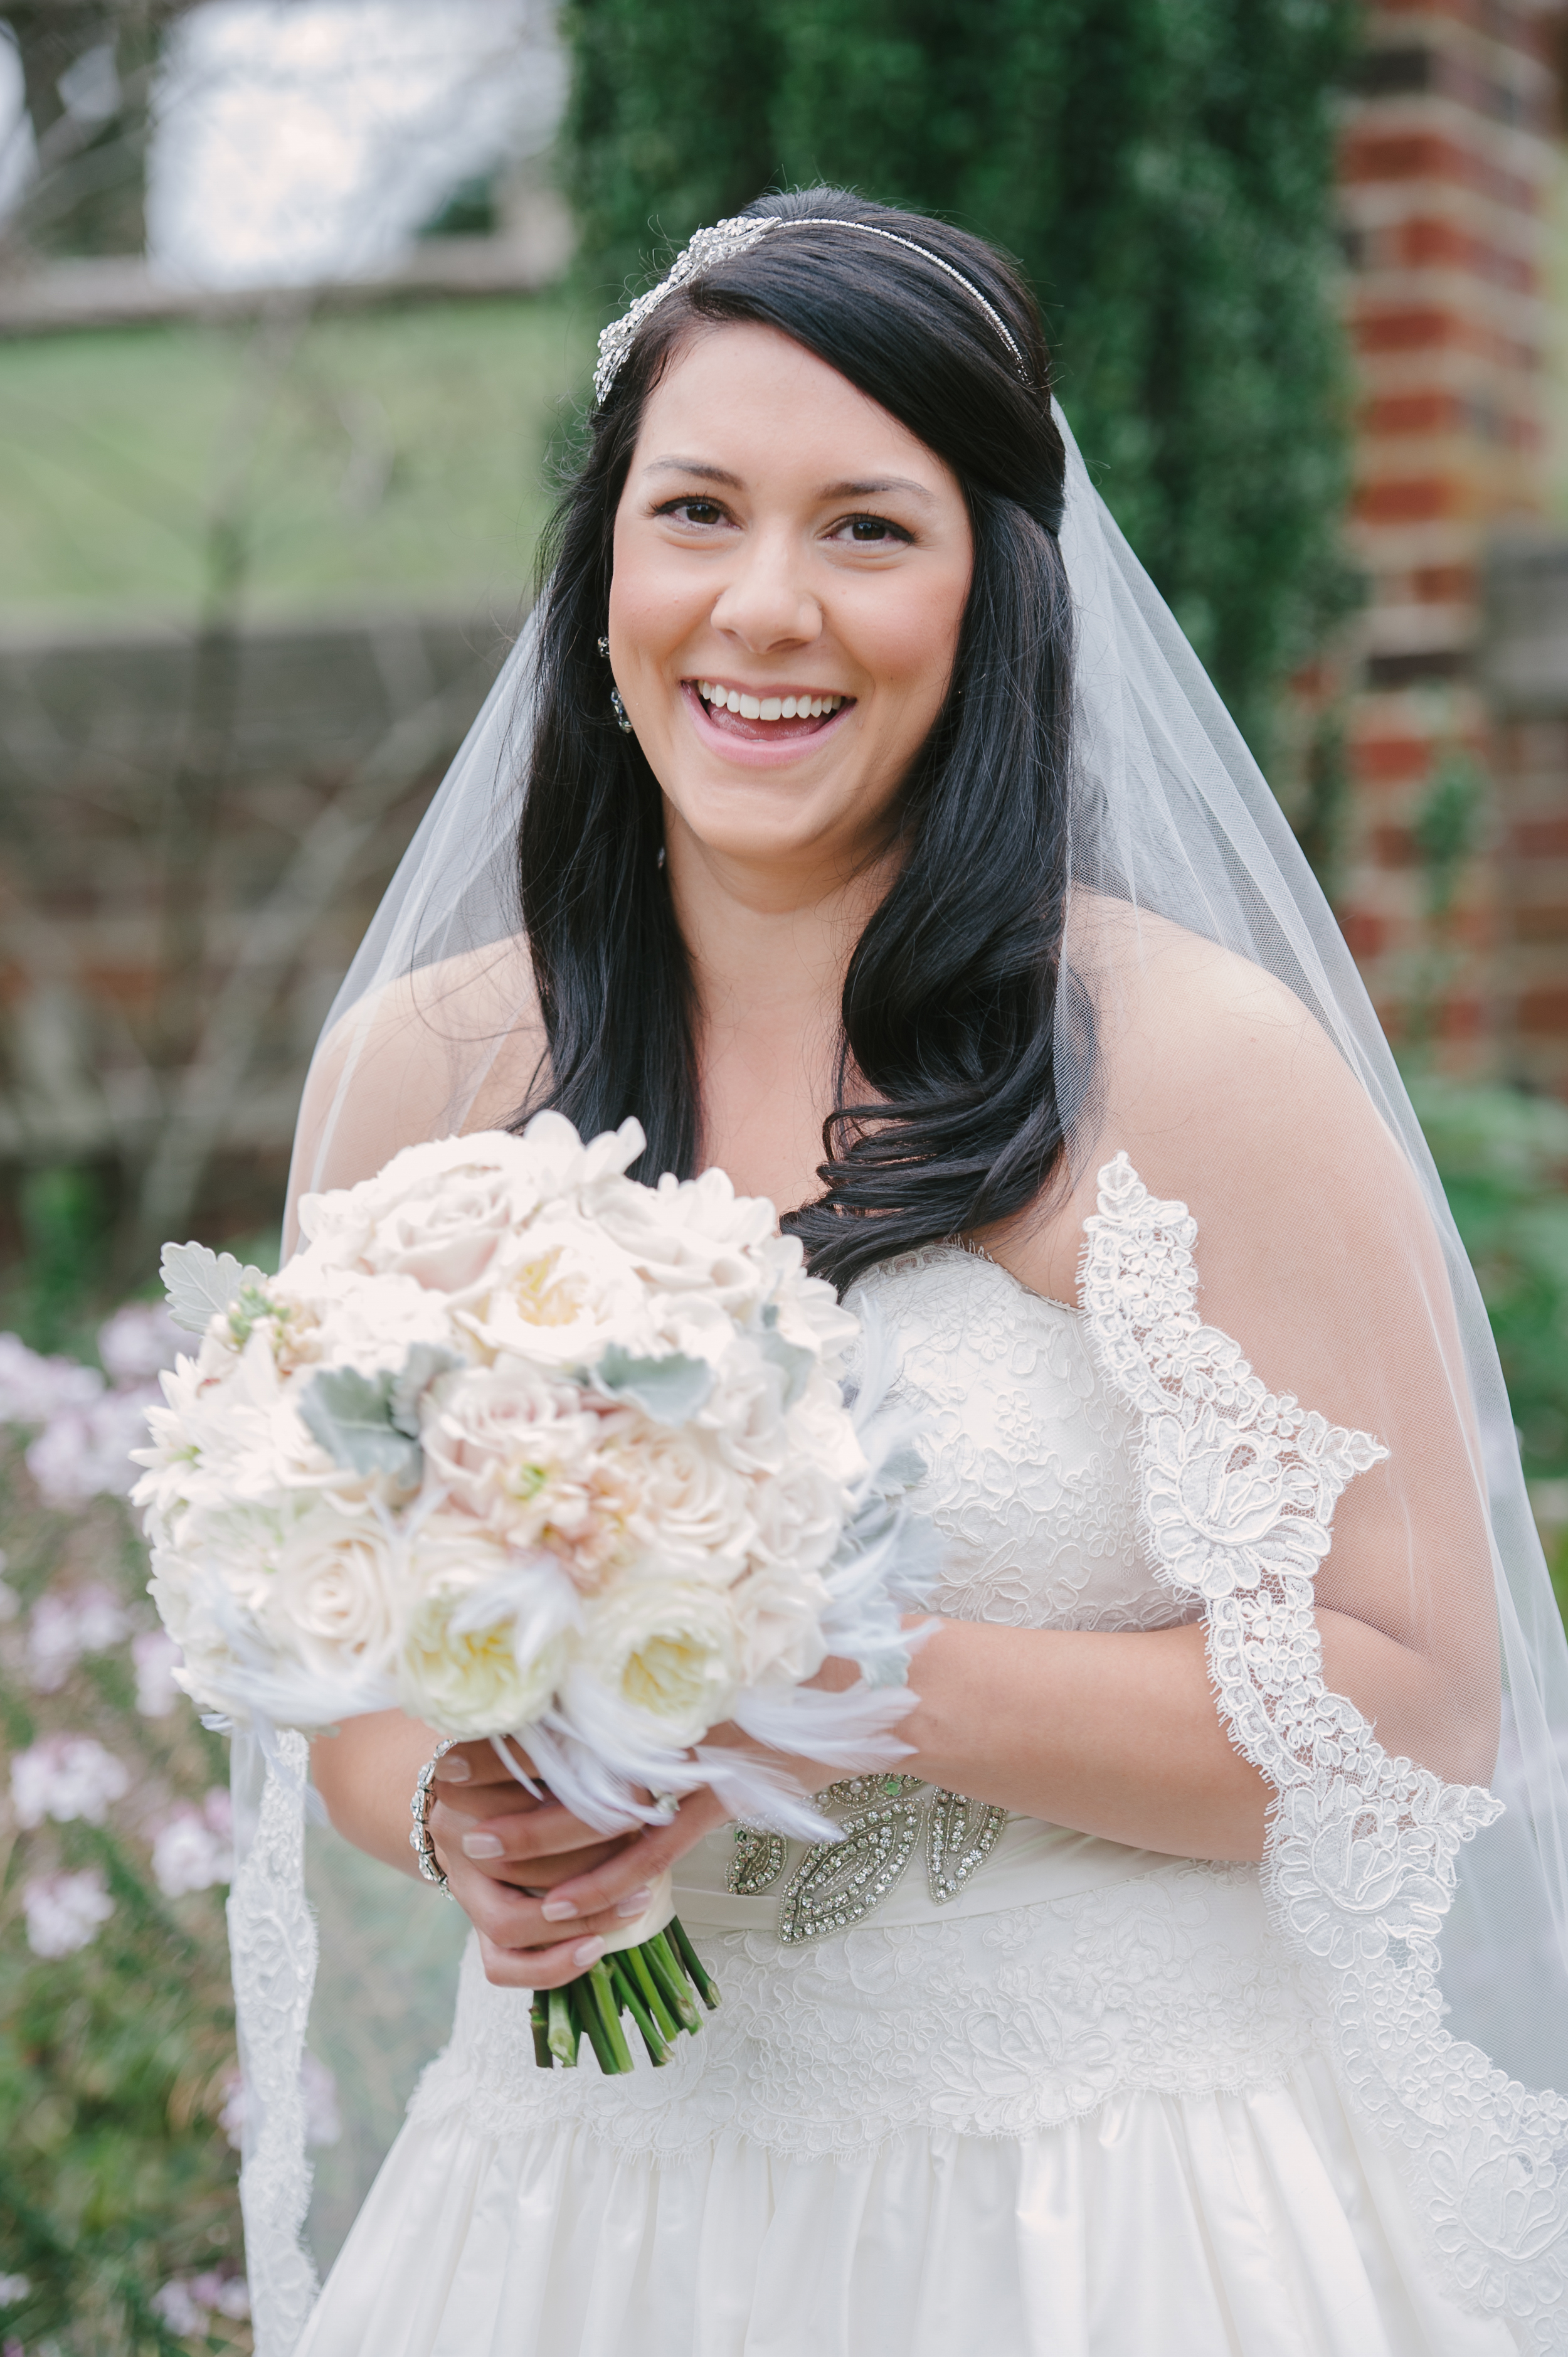 waveny_house_wedding_New_canaan_CT_Amy_Champagne_Events233.jpg